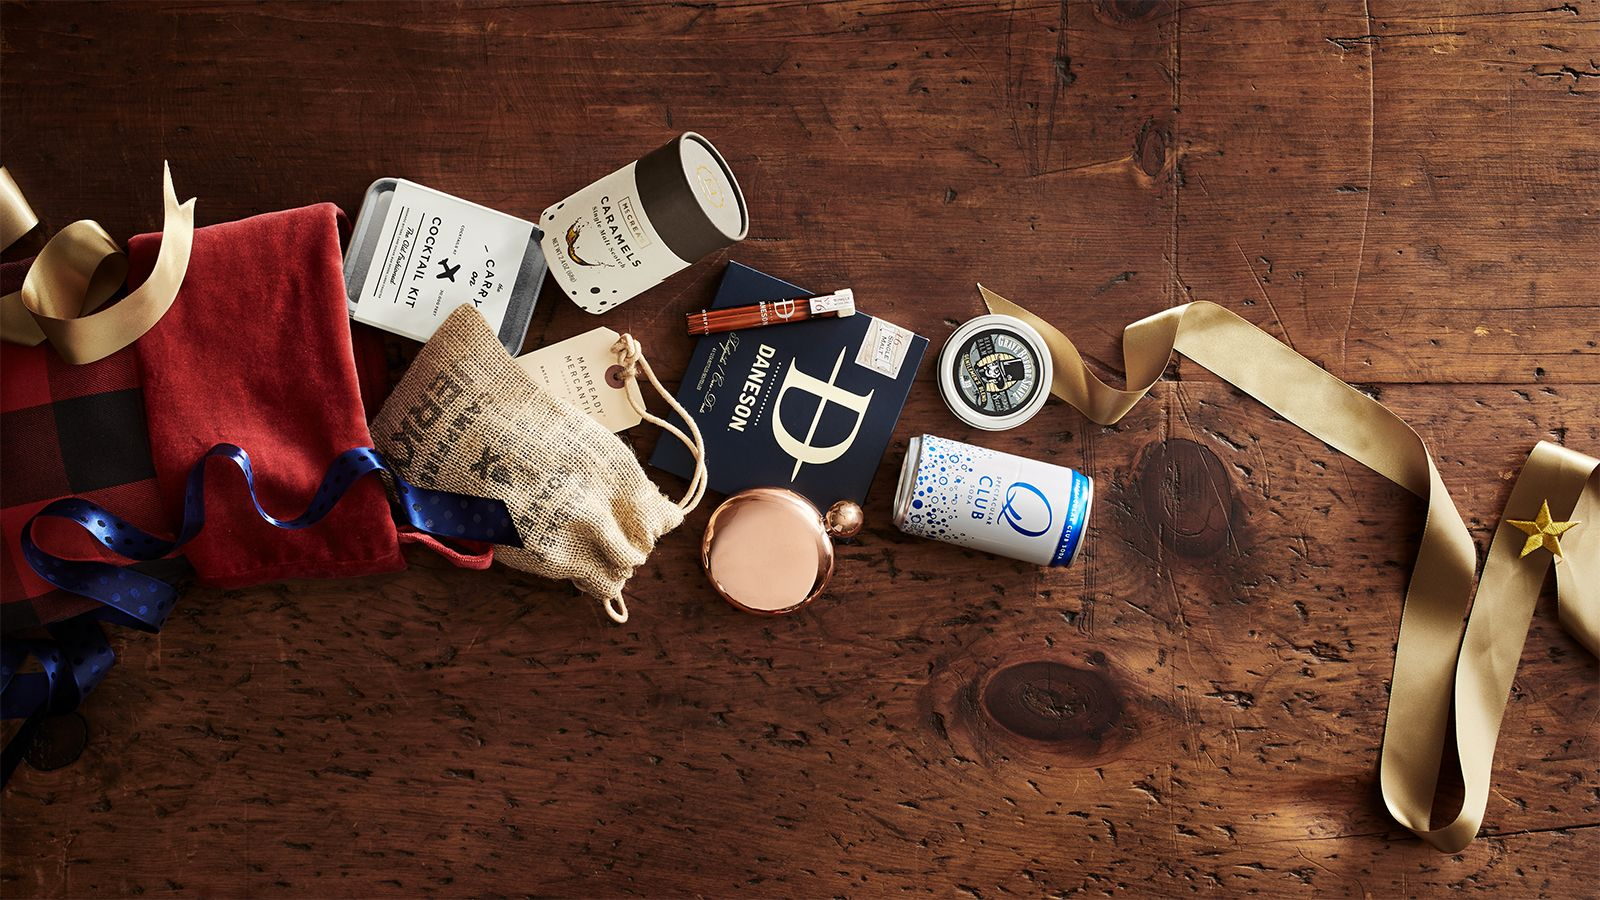 From candies to a cocktail kit these small gifts will